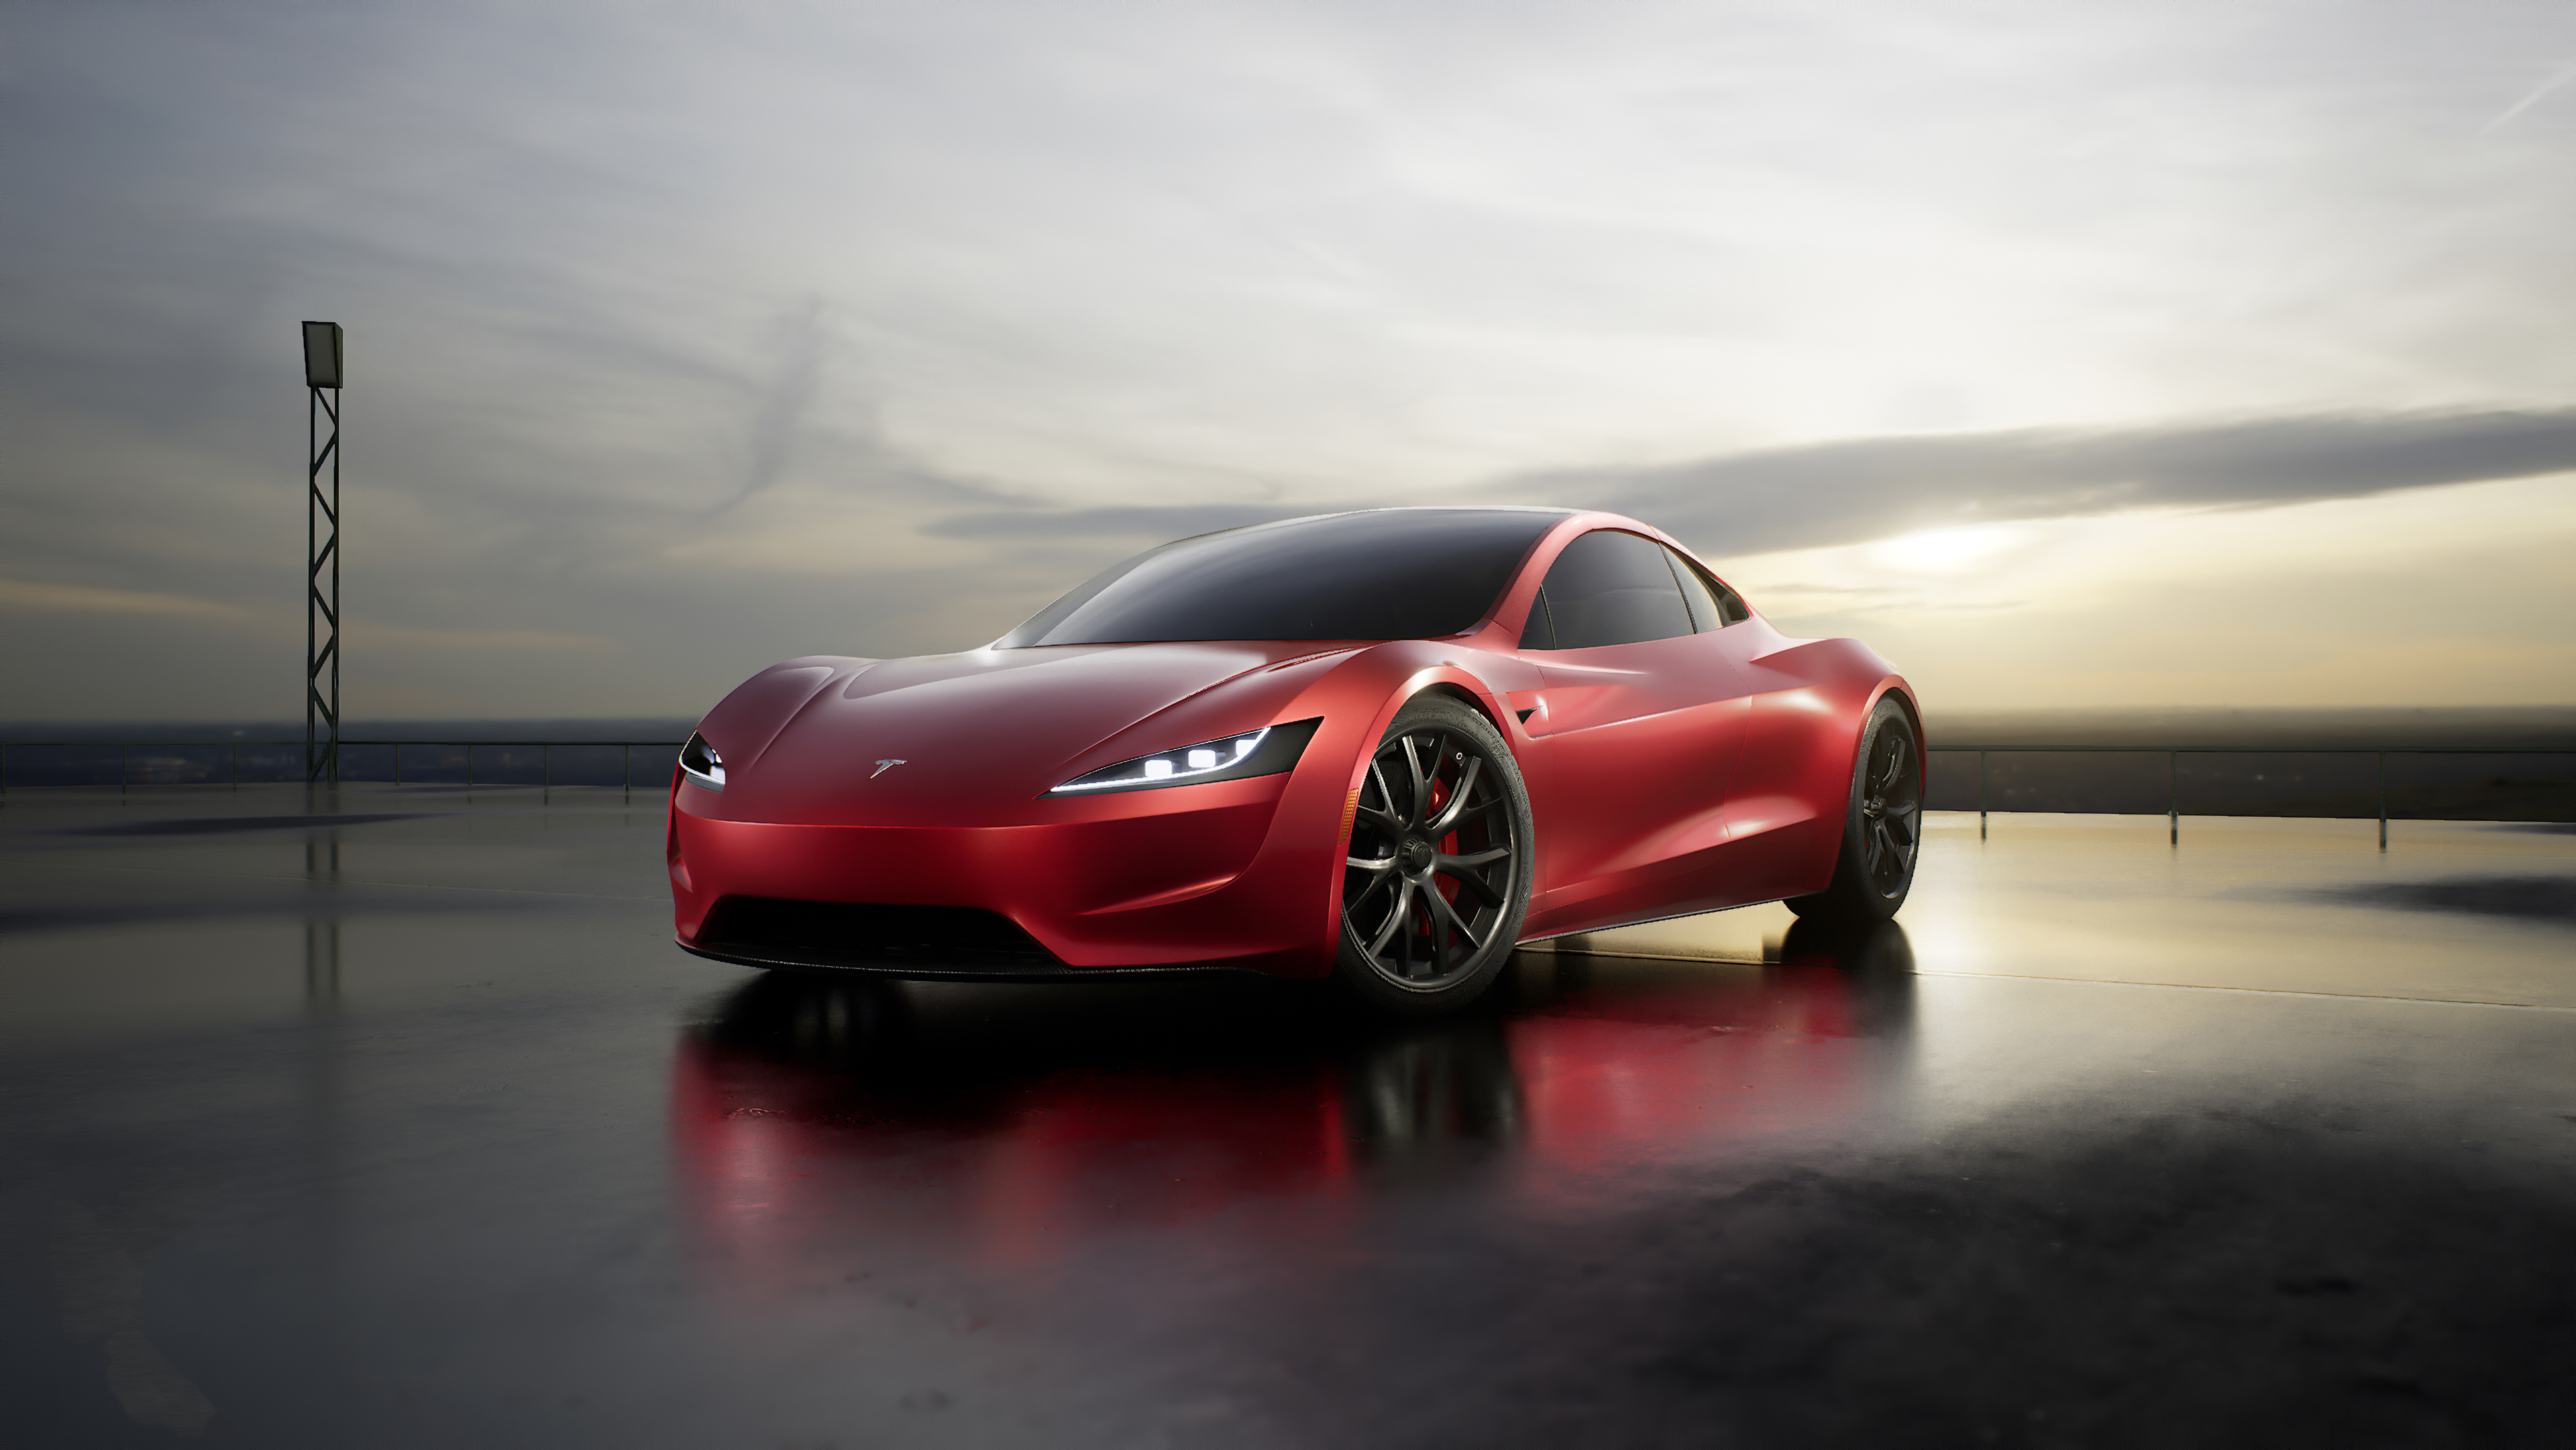 Tesla Roadster 2020 Hd Cars 4k Wallpapers Images Backgrounds Photos And Pictures